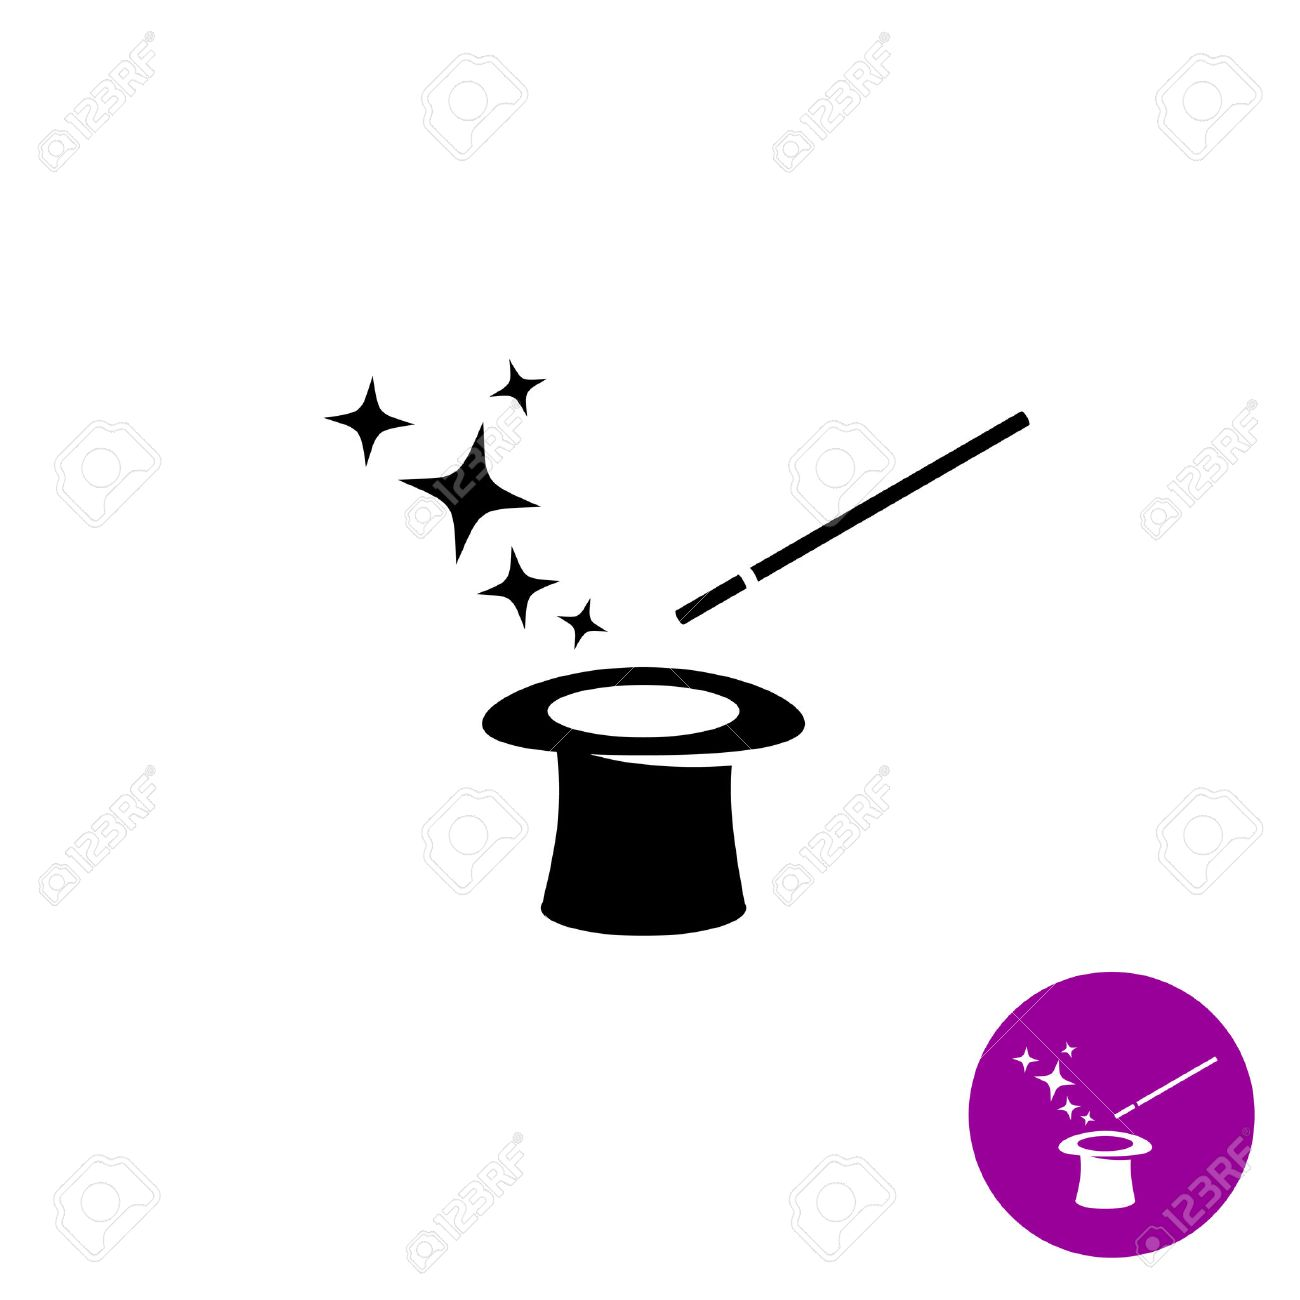 Magic wand with magician hat and stars black symbol - 46448225